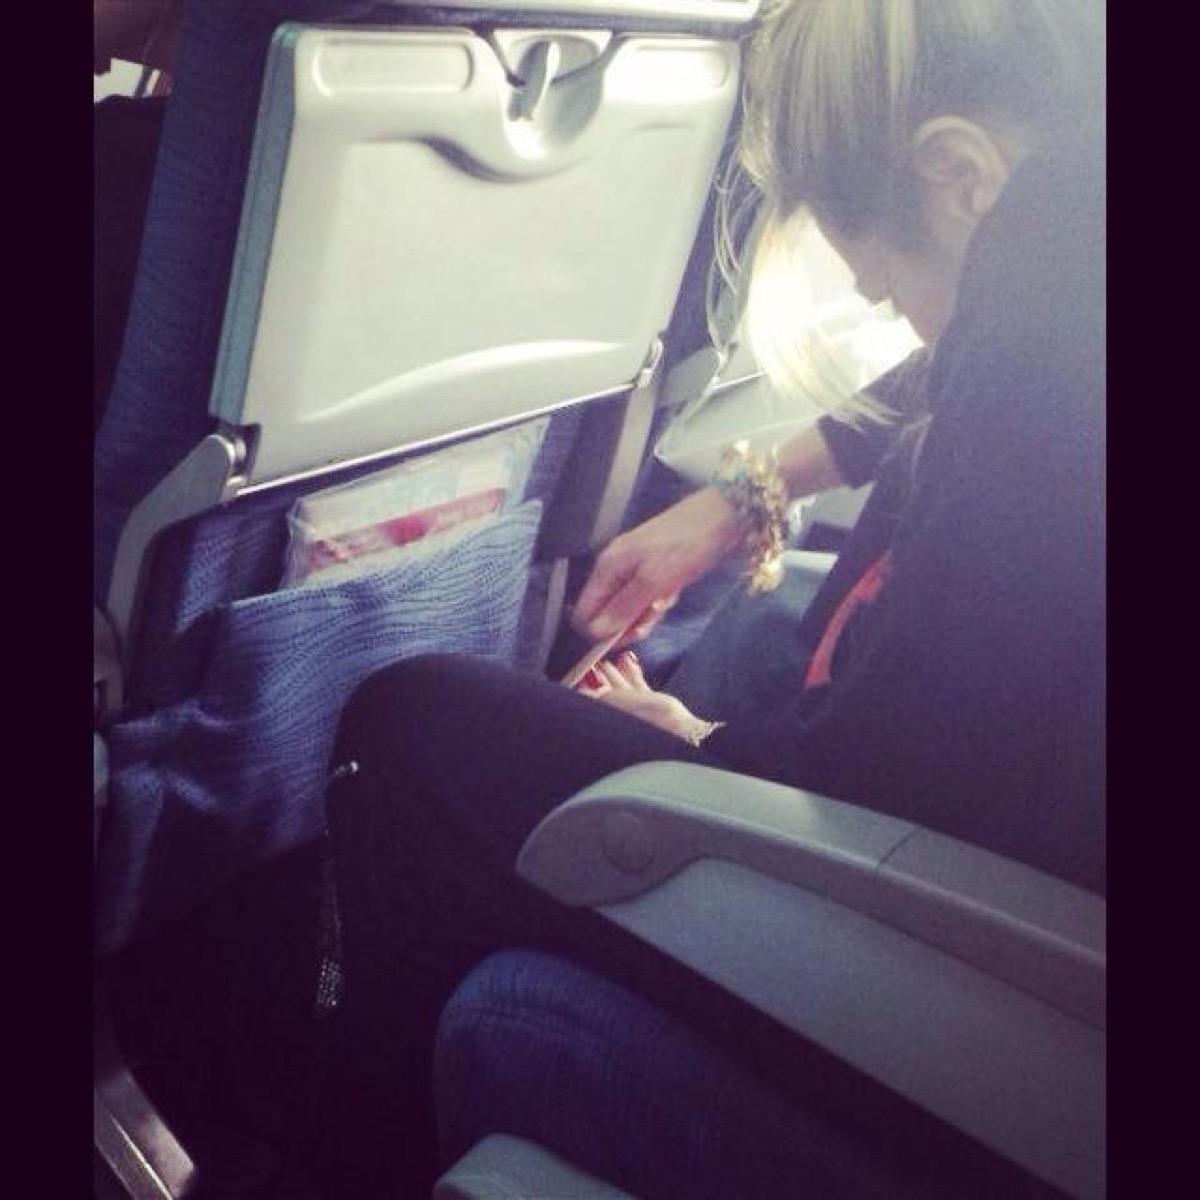 Woman filing toenails on an airplane photos of terrible airplane passengers